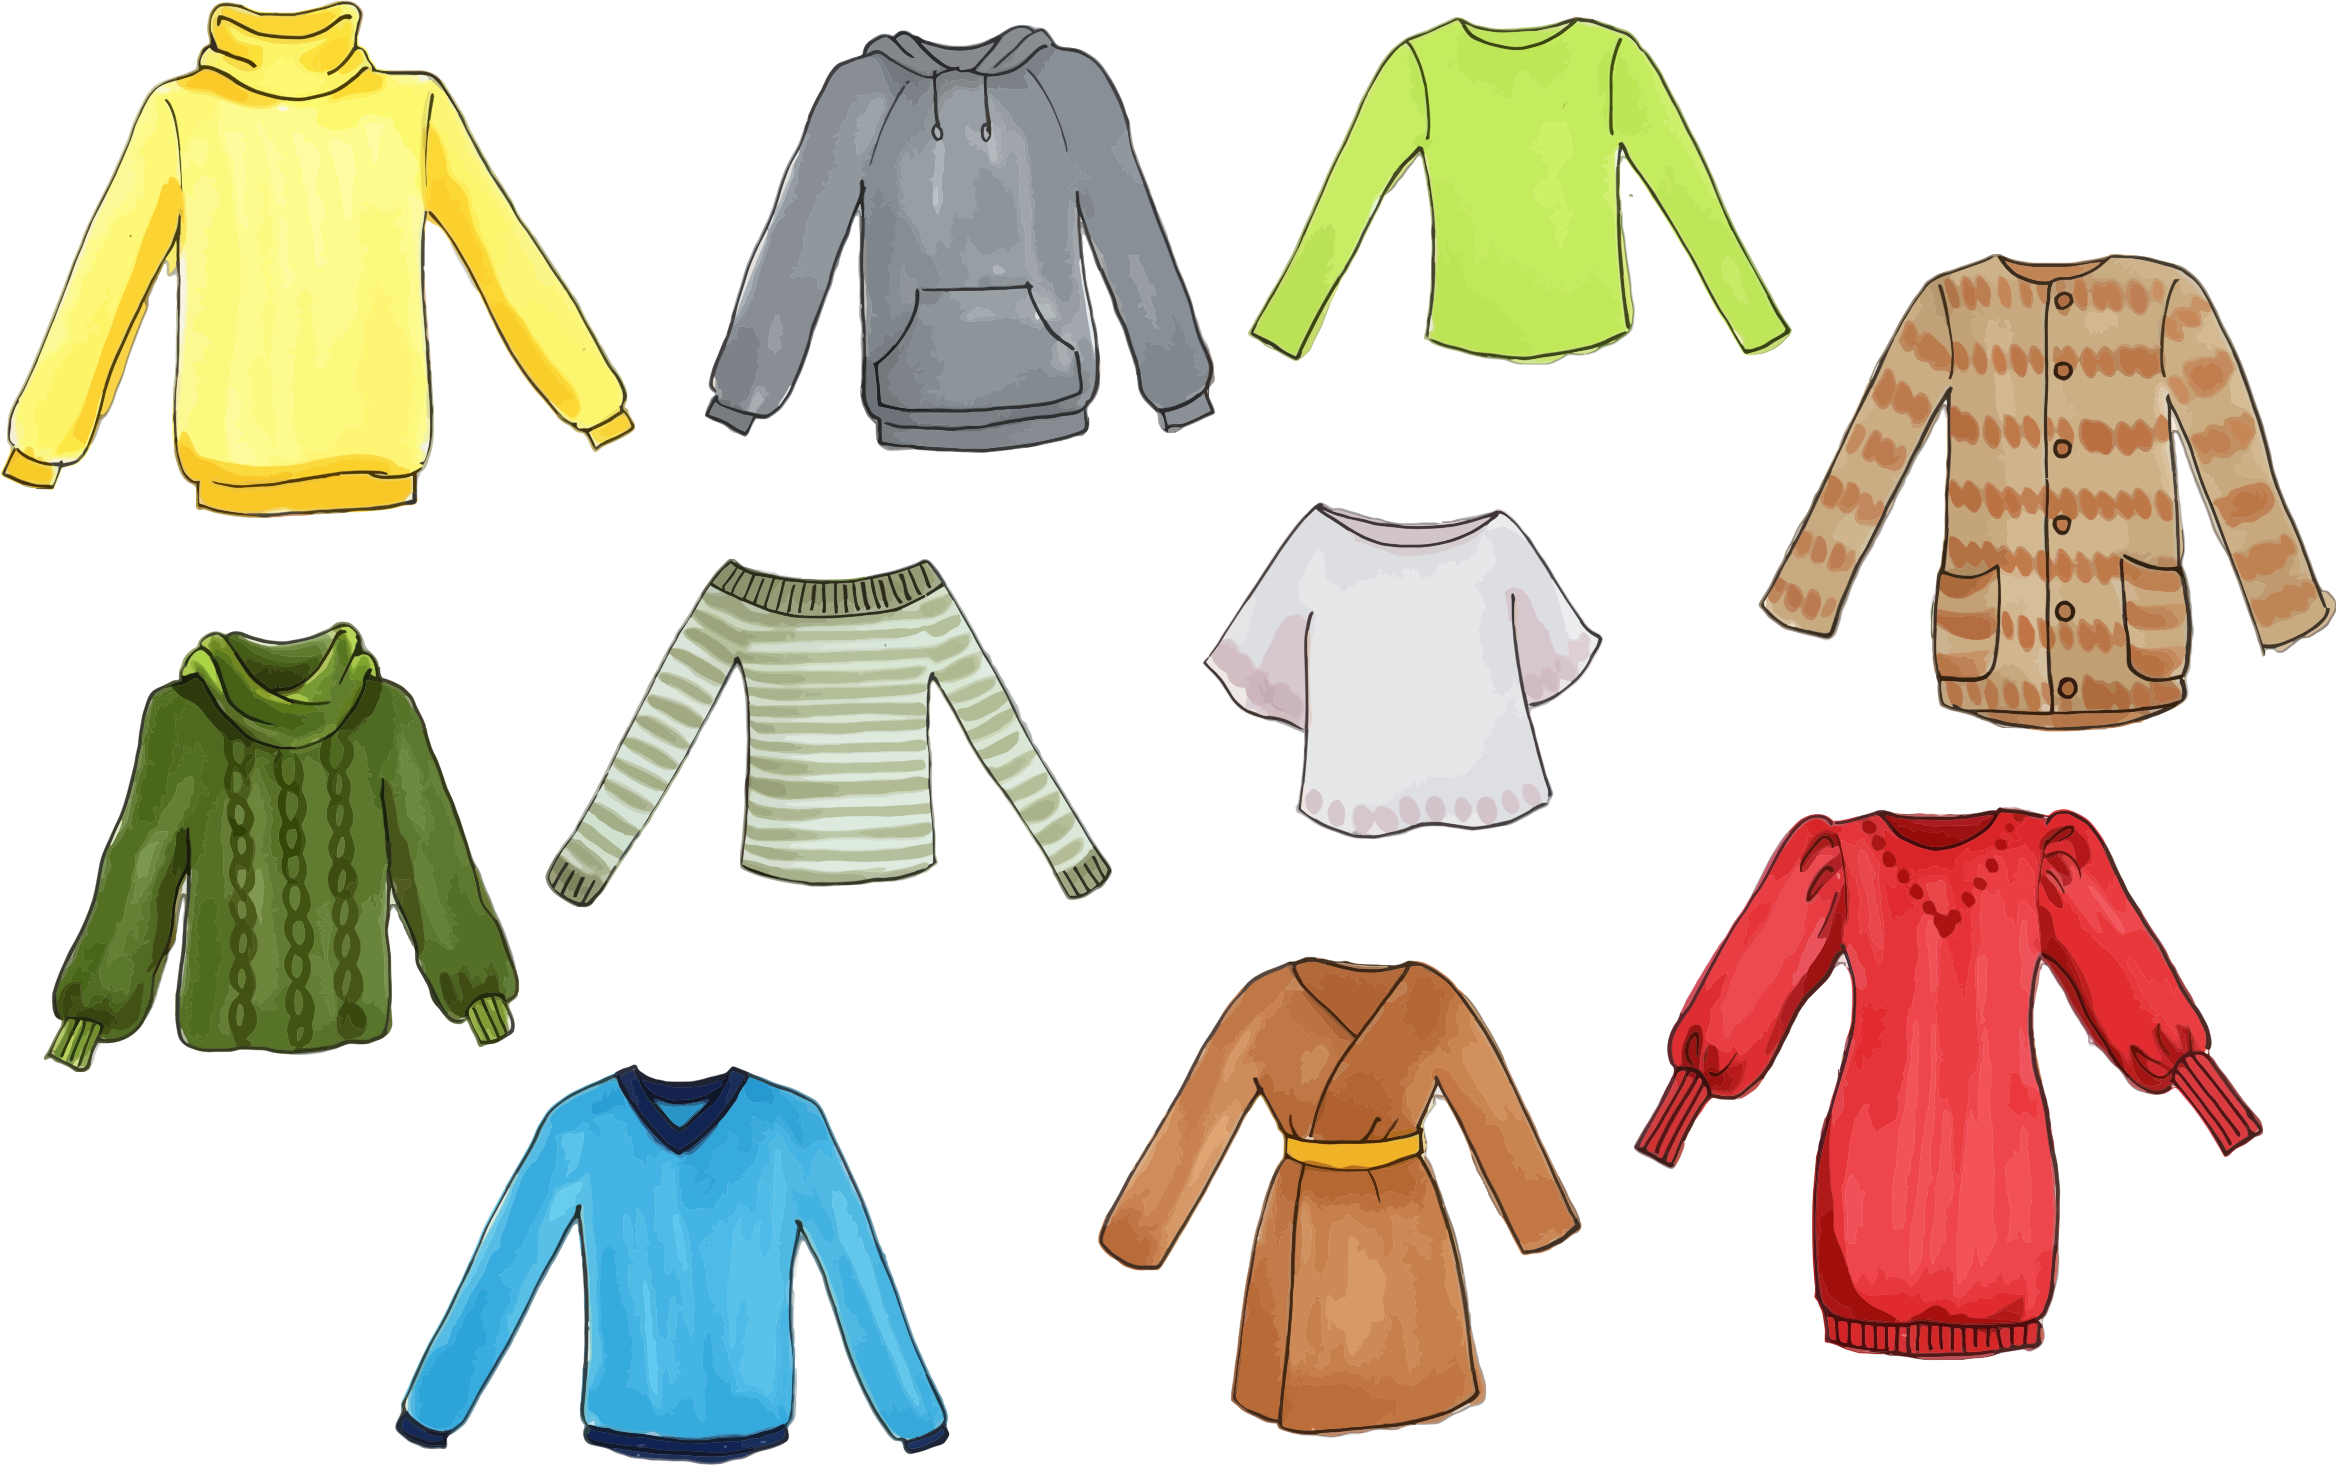 Costume clipart clothing. Tops big image png